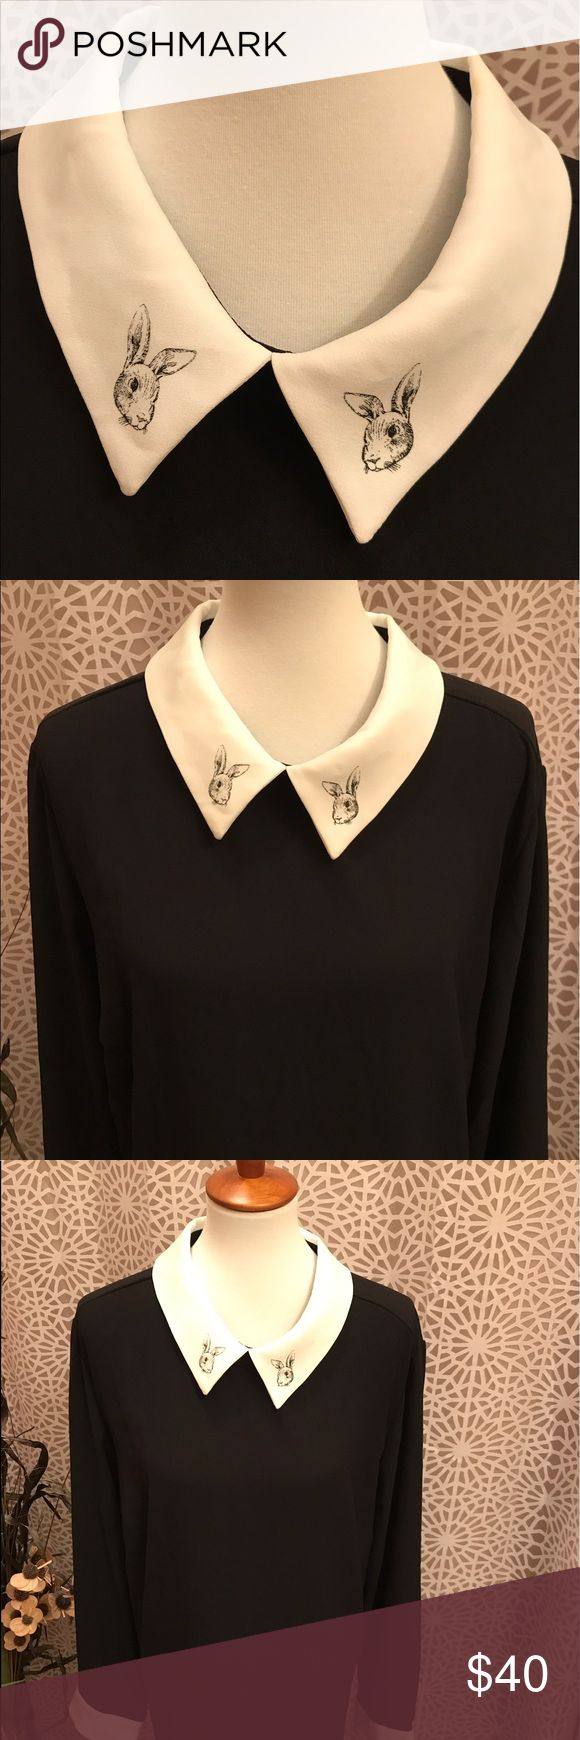 3X Plus Size Black and White Rabbit Collar Dress The rabbit collar turns this long sleeve black and white long sleeve dress into a total statement piece. In excellent condition. Zips up the back. 100% polyester. Victoria Beckham for Target Dresses Long Sleeve